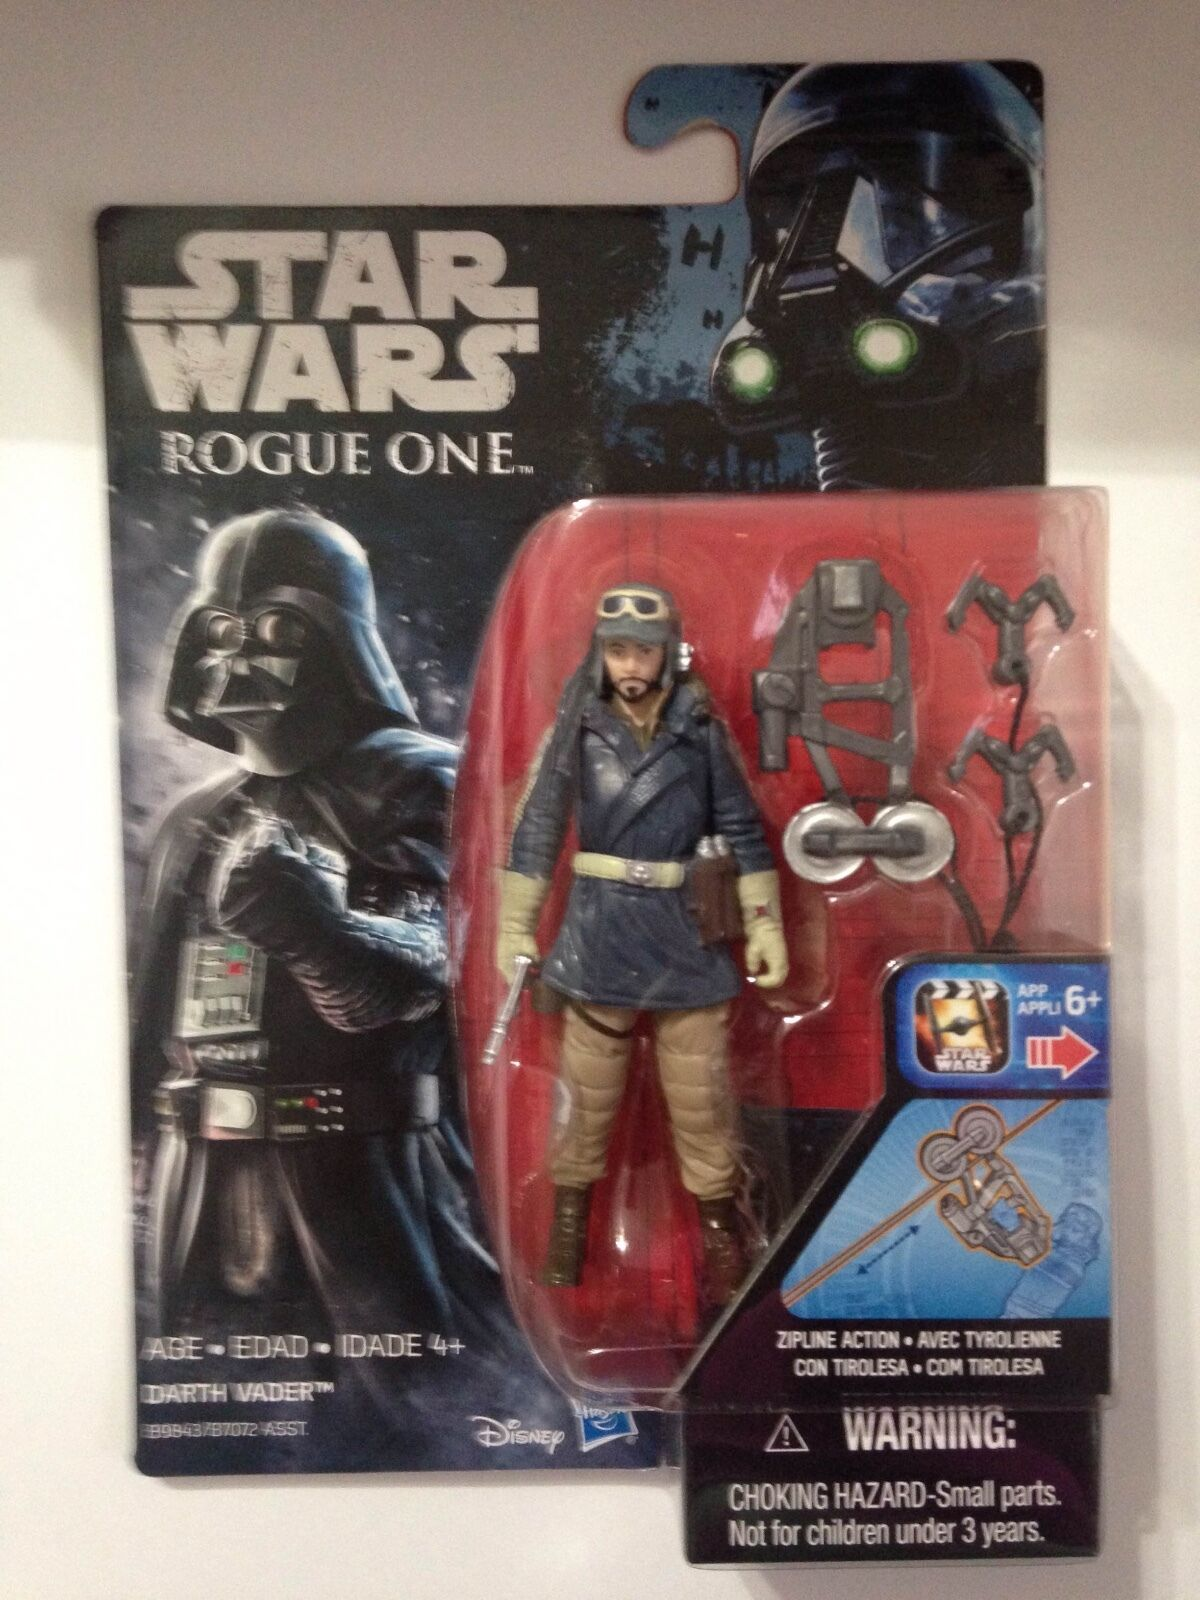 Star Wars Rogue One Captain Cassian Andor (EADU)Figure-ERROR on Darth Vader Card